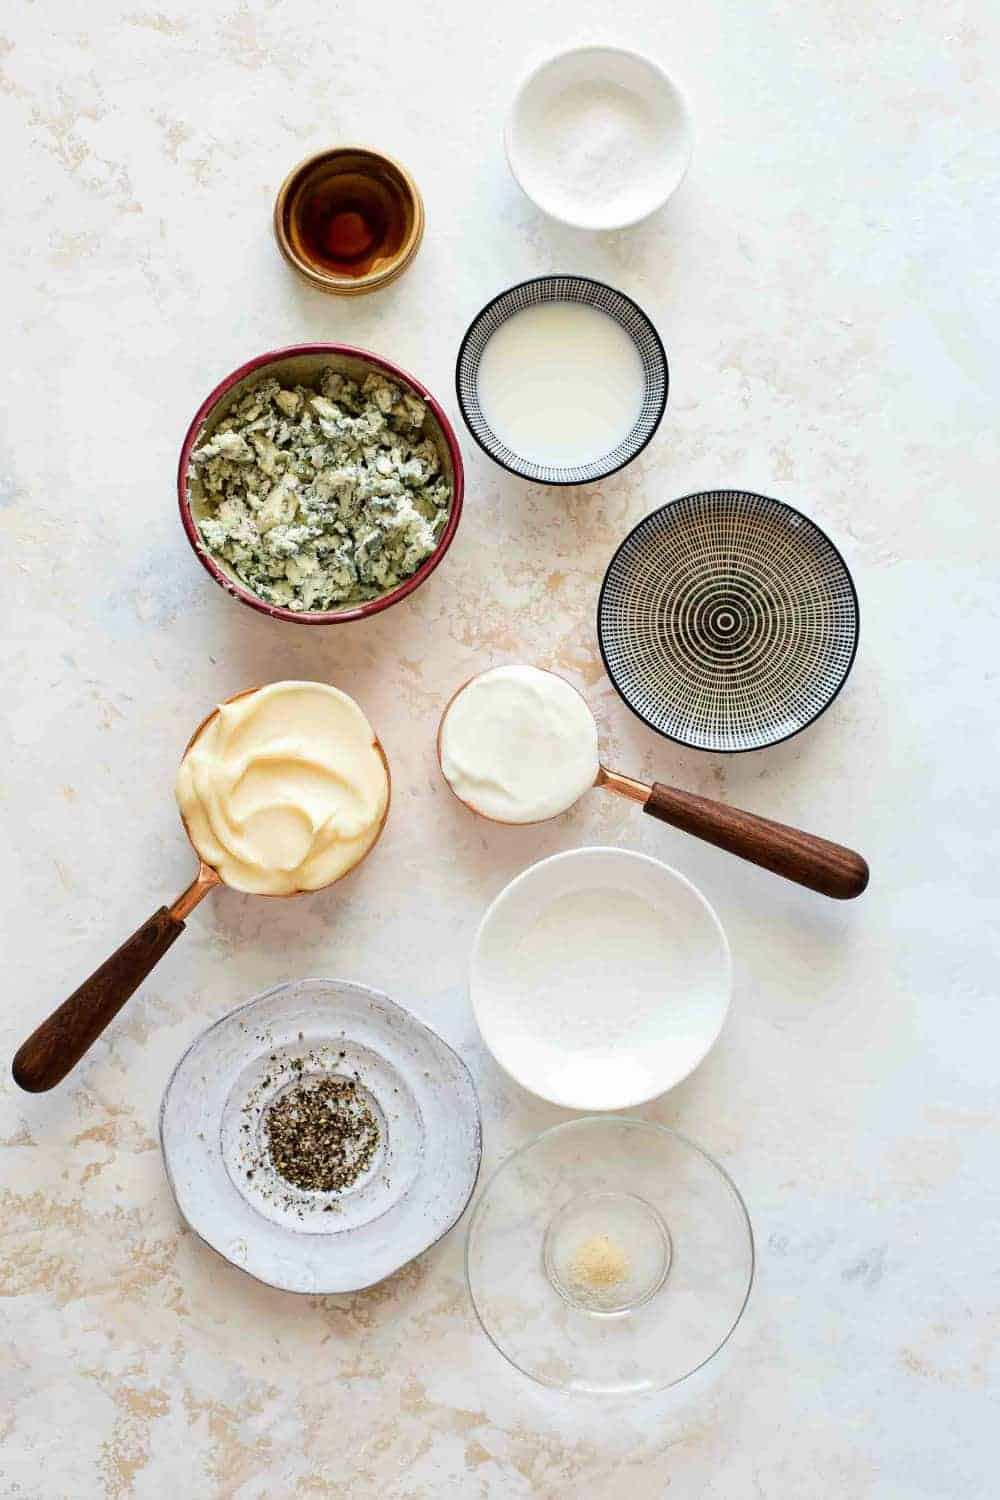 Ingredients for homemade blue cheese dressing in bowls, ready to mix